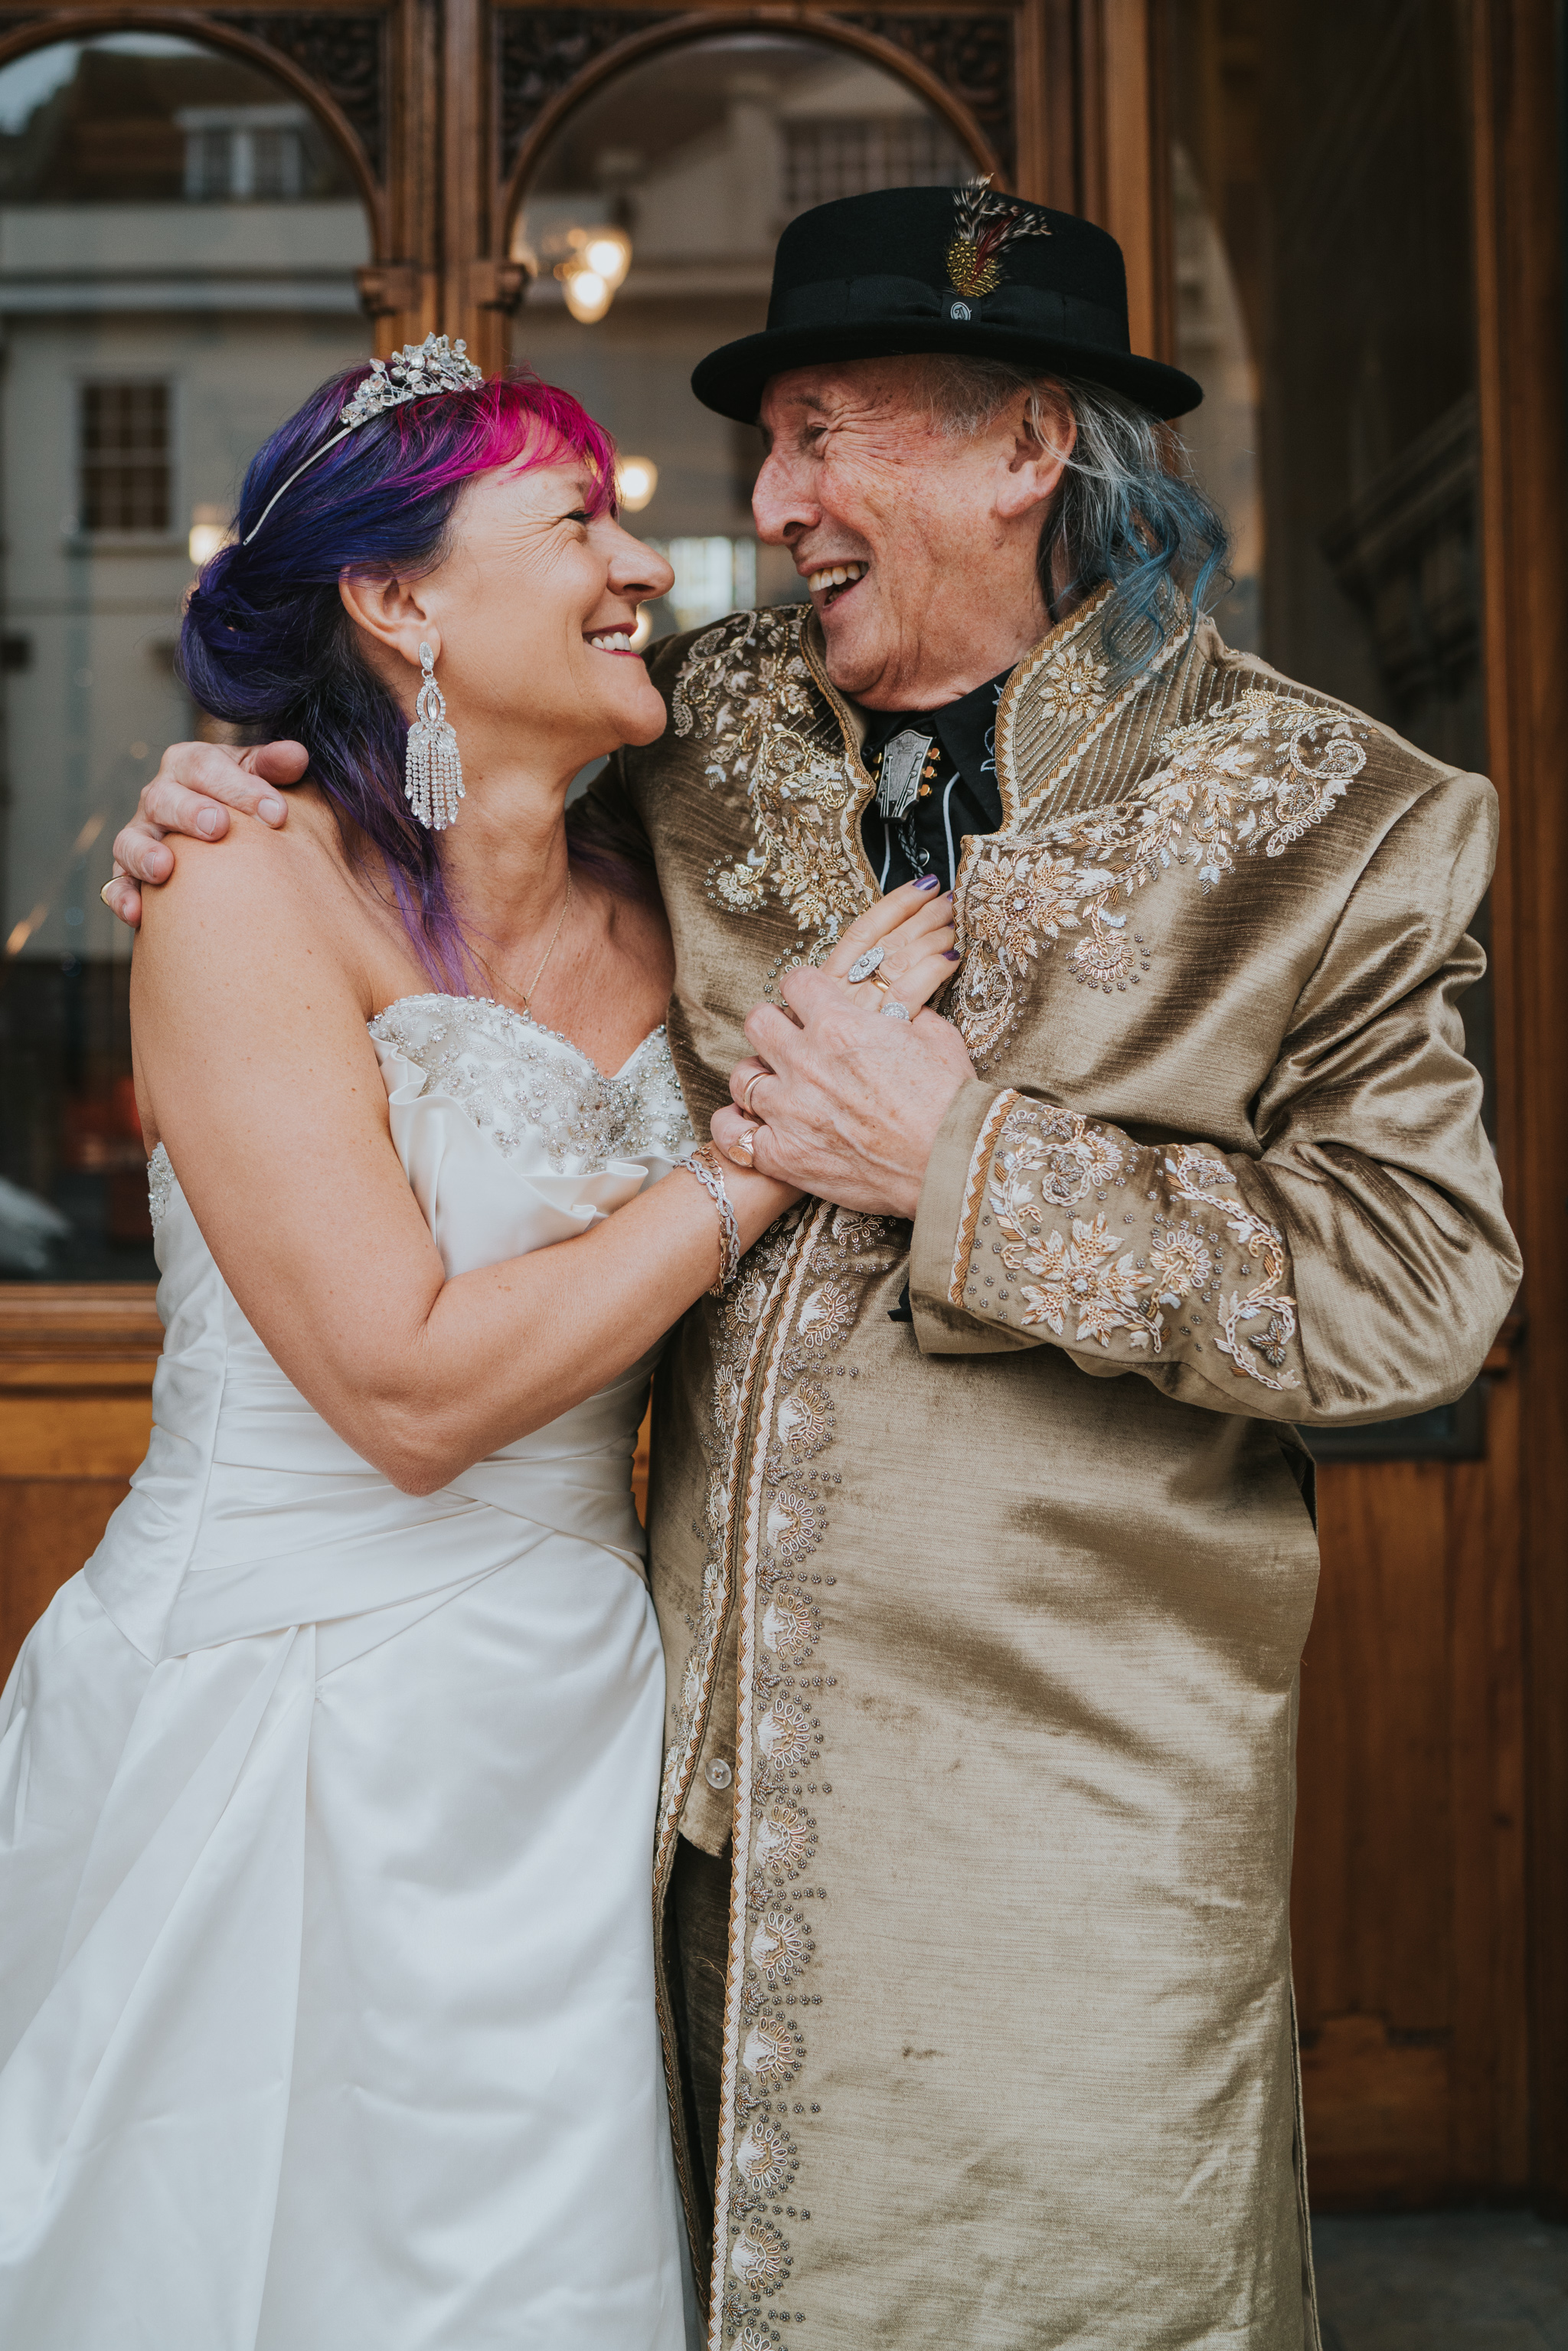 david-kim-elopement-colchester-essex-alternative-wedding-photographer-grace-elizabeth-essex-suffolk-norfolk-devon (35 of 38).jpg